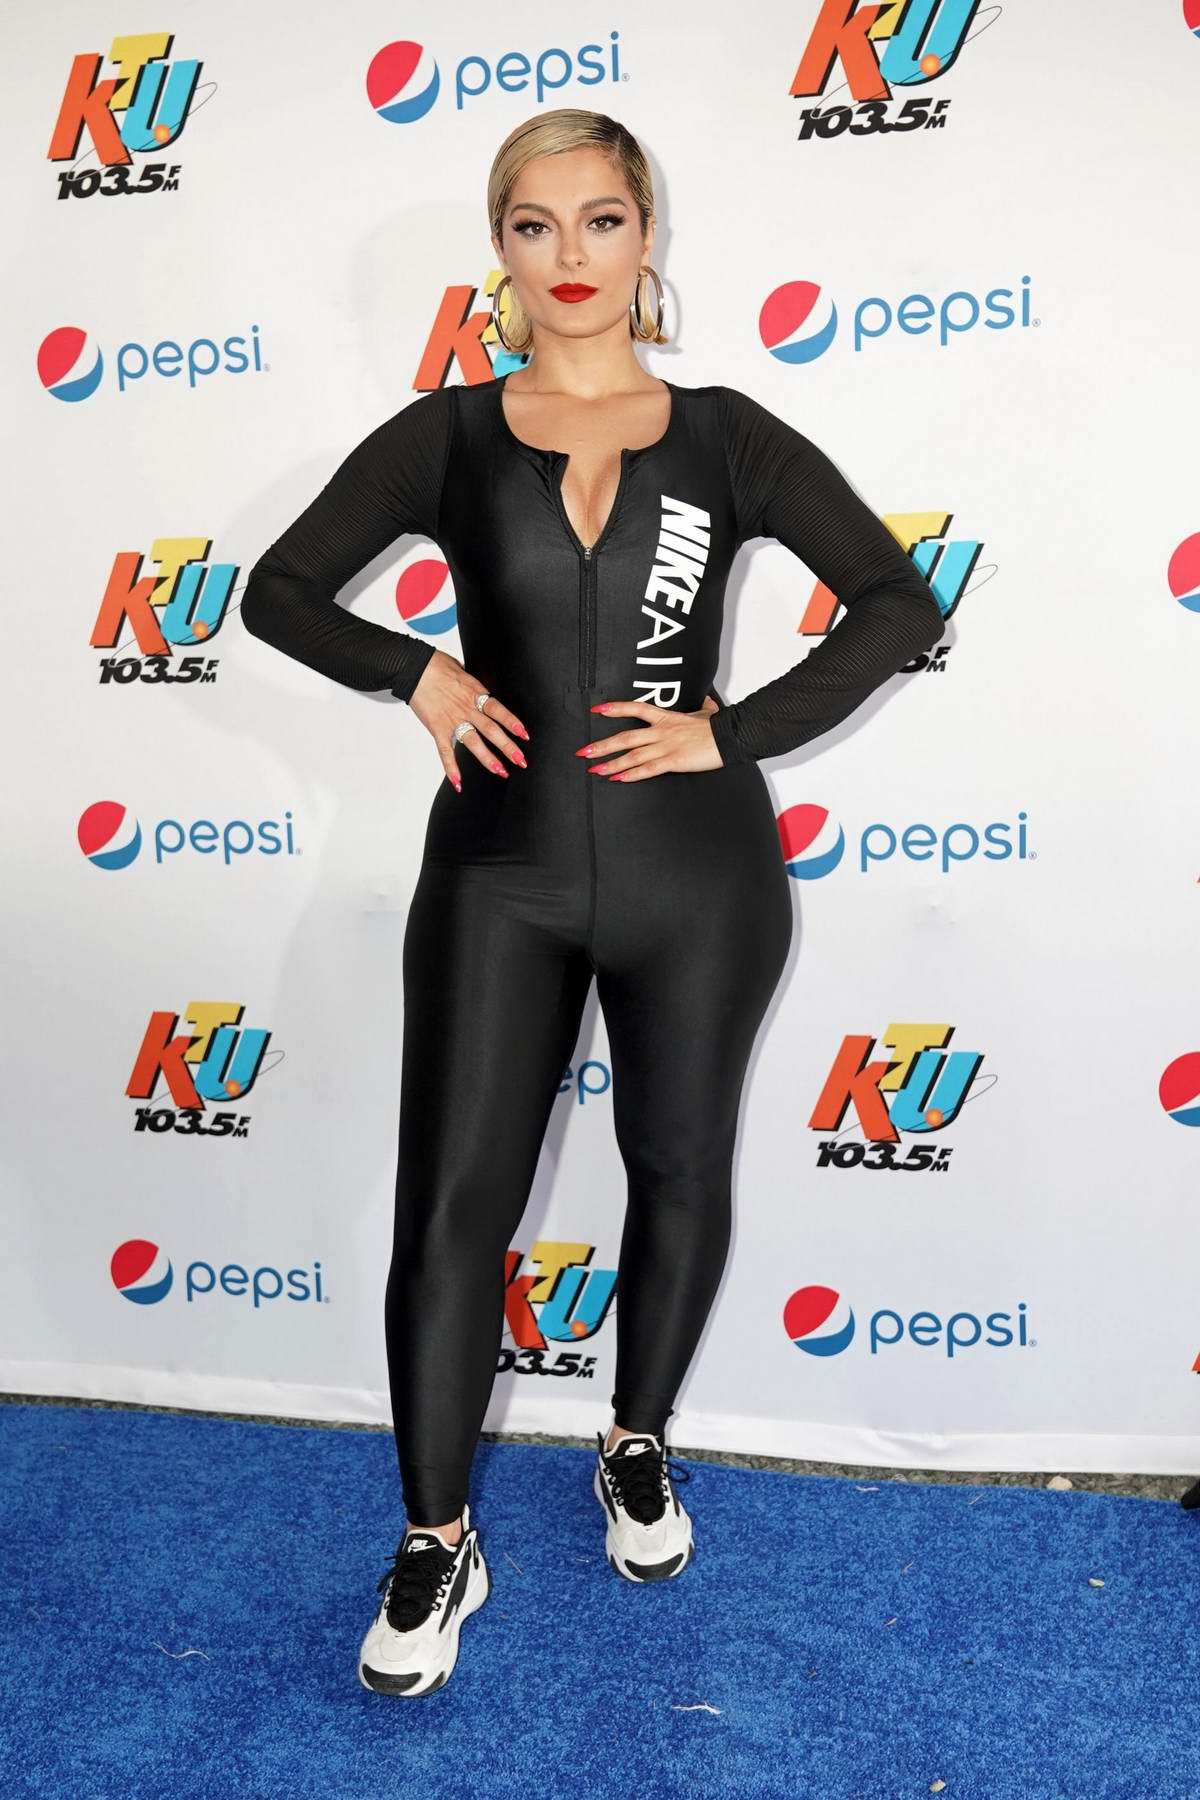 Bebe Rexha at the 2019 103.5 KTU KTUphoria in Wantagh, New York City